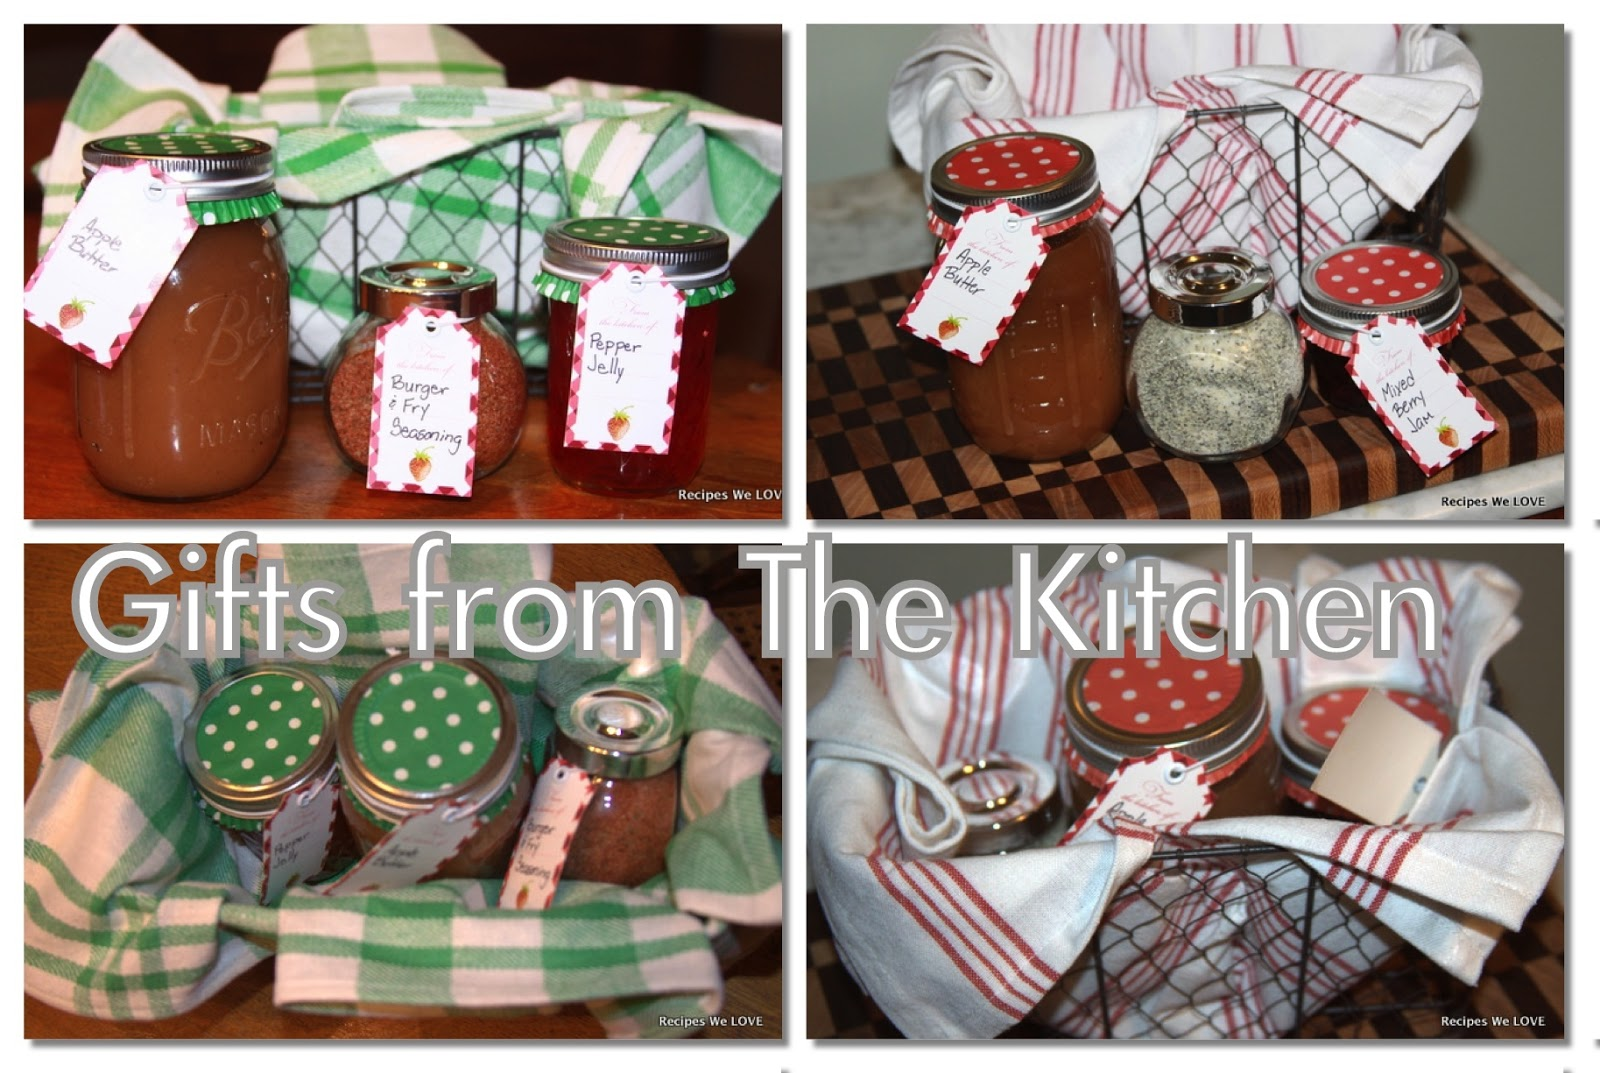 recipes we love gifts from the kitchen idea 1